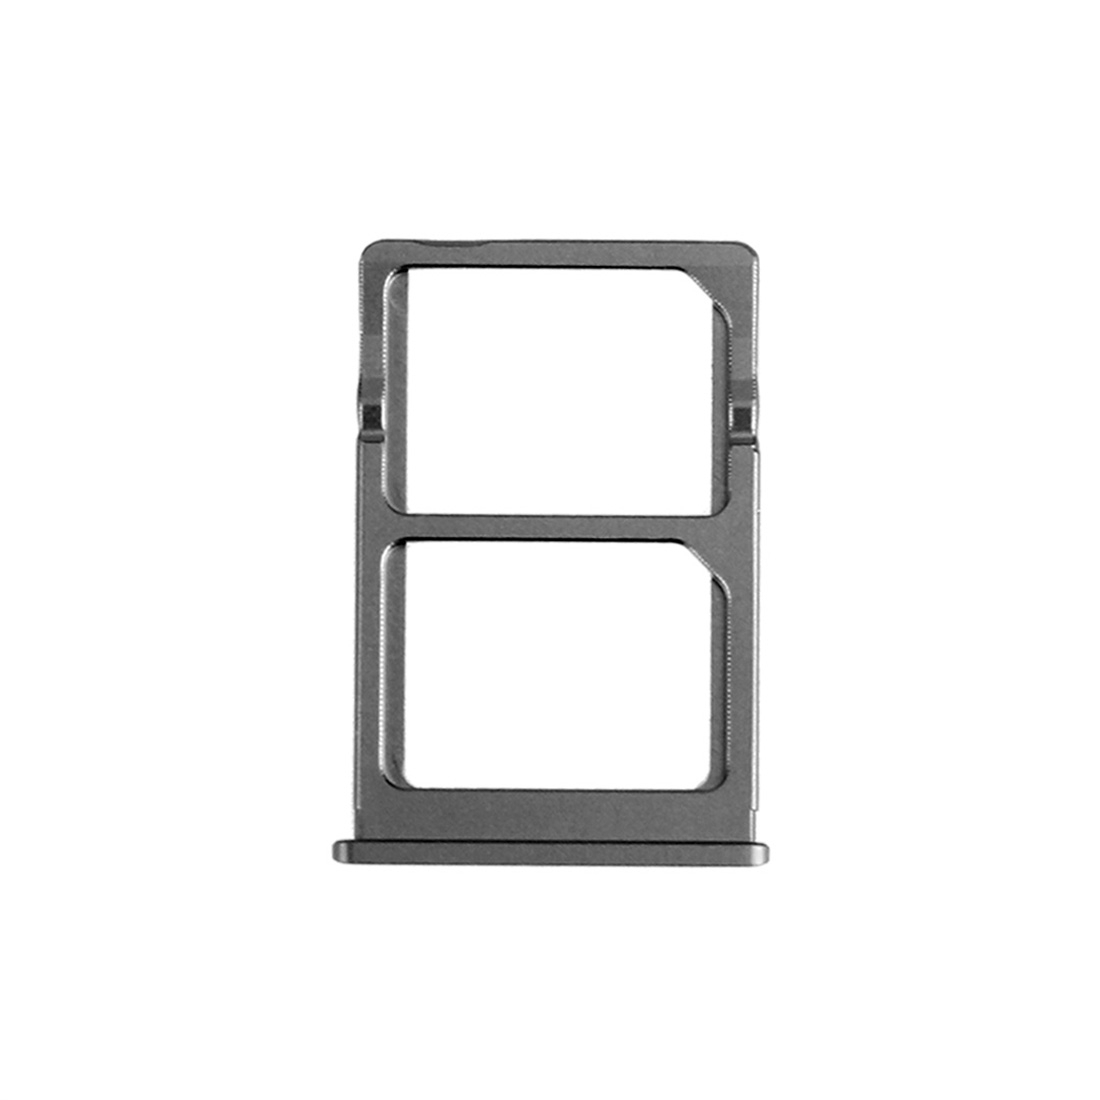 Original for Xiaomi Mi 5 Mi5 M5 Nano SIM Card Tray Holder Slot Adapter Replacement Repair Parts Black SilverTested